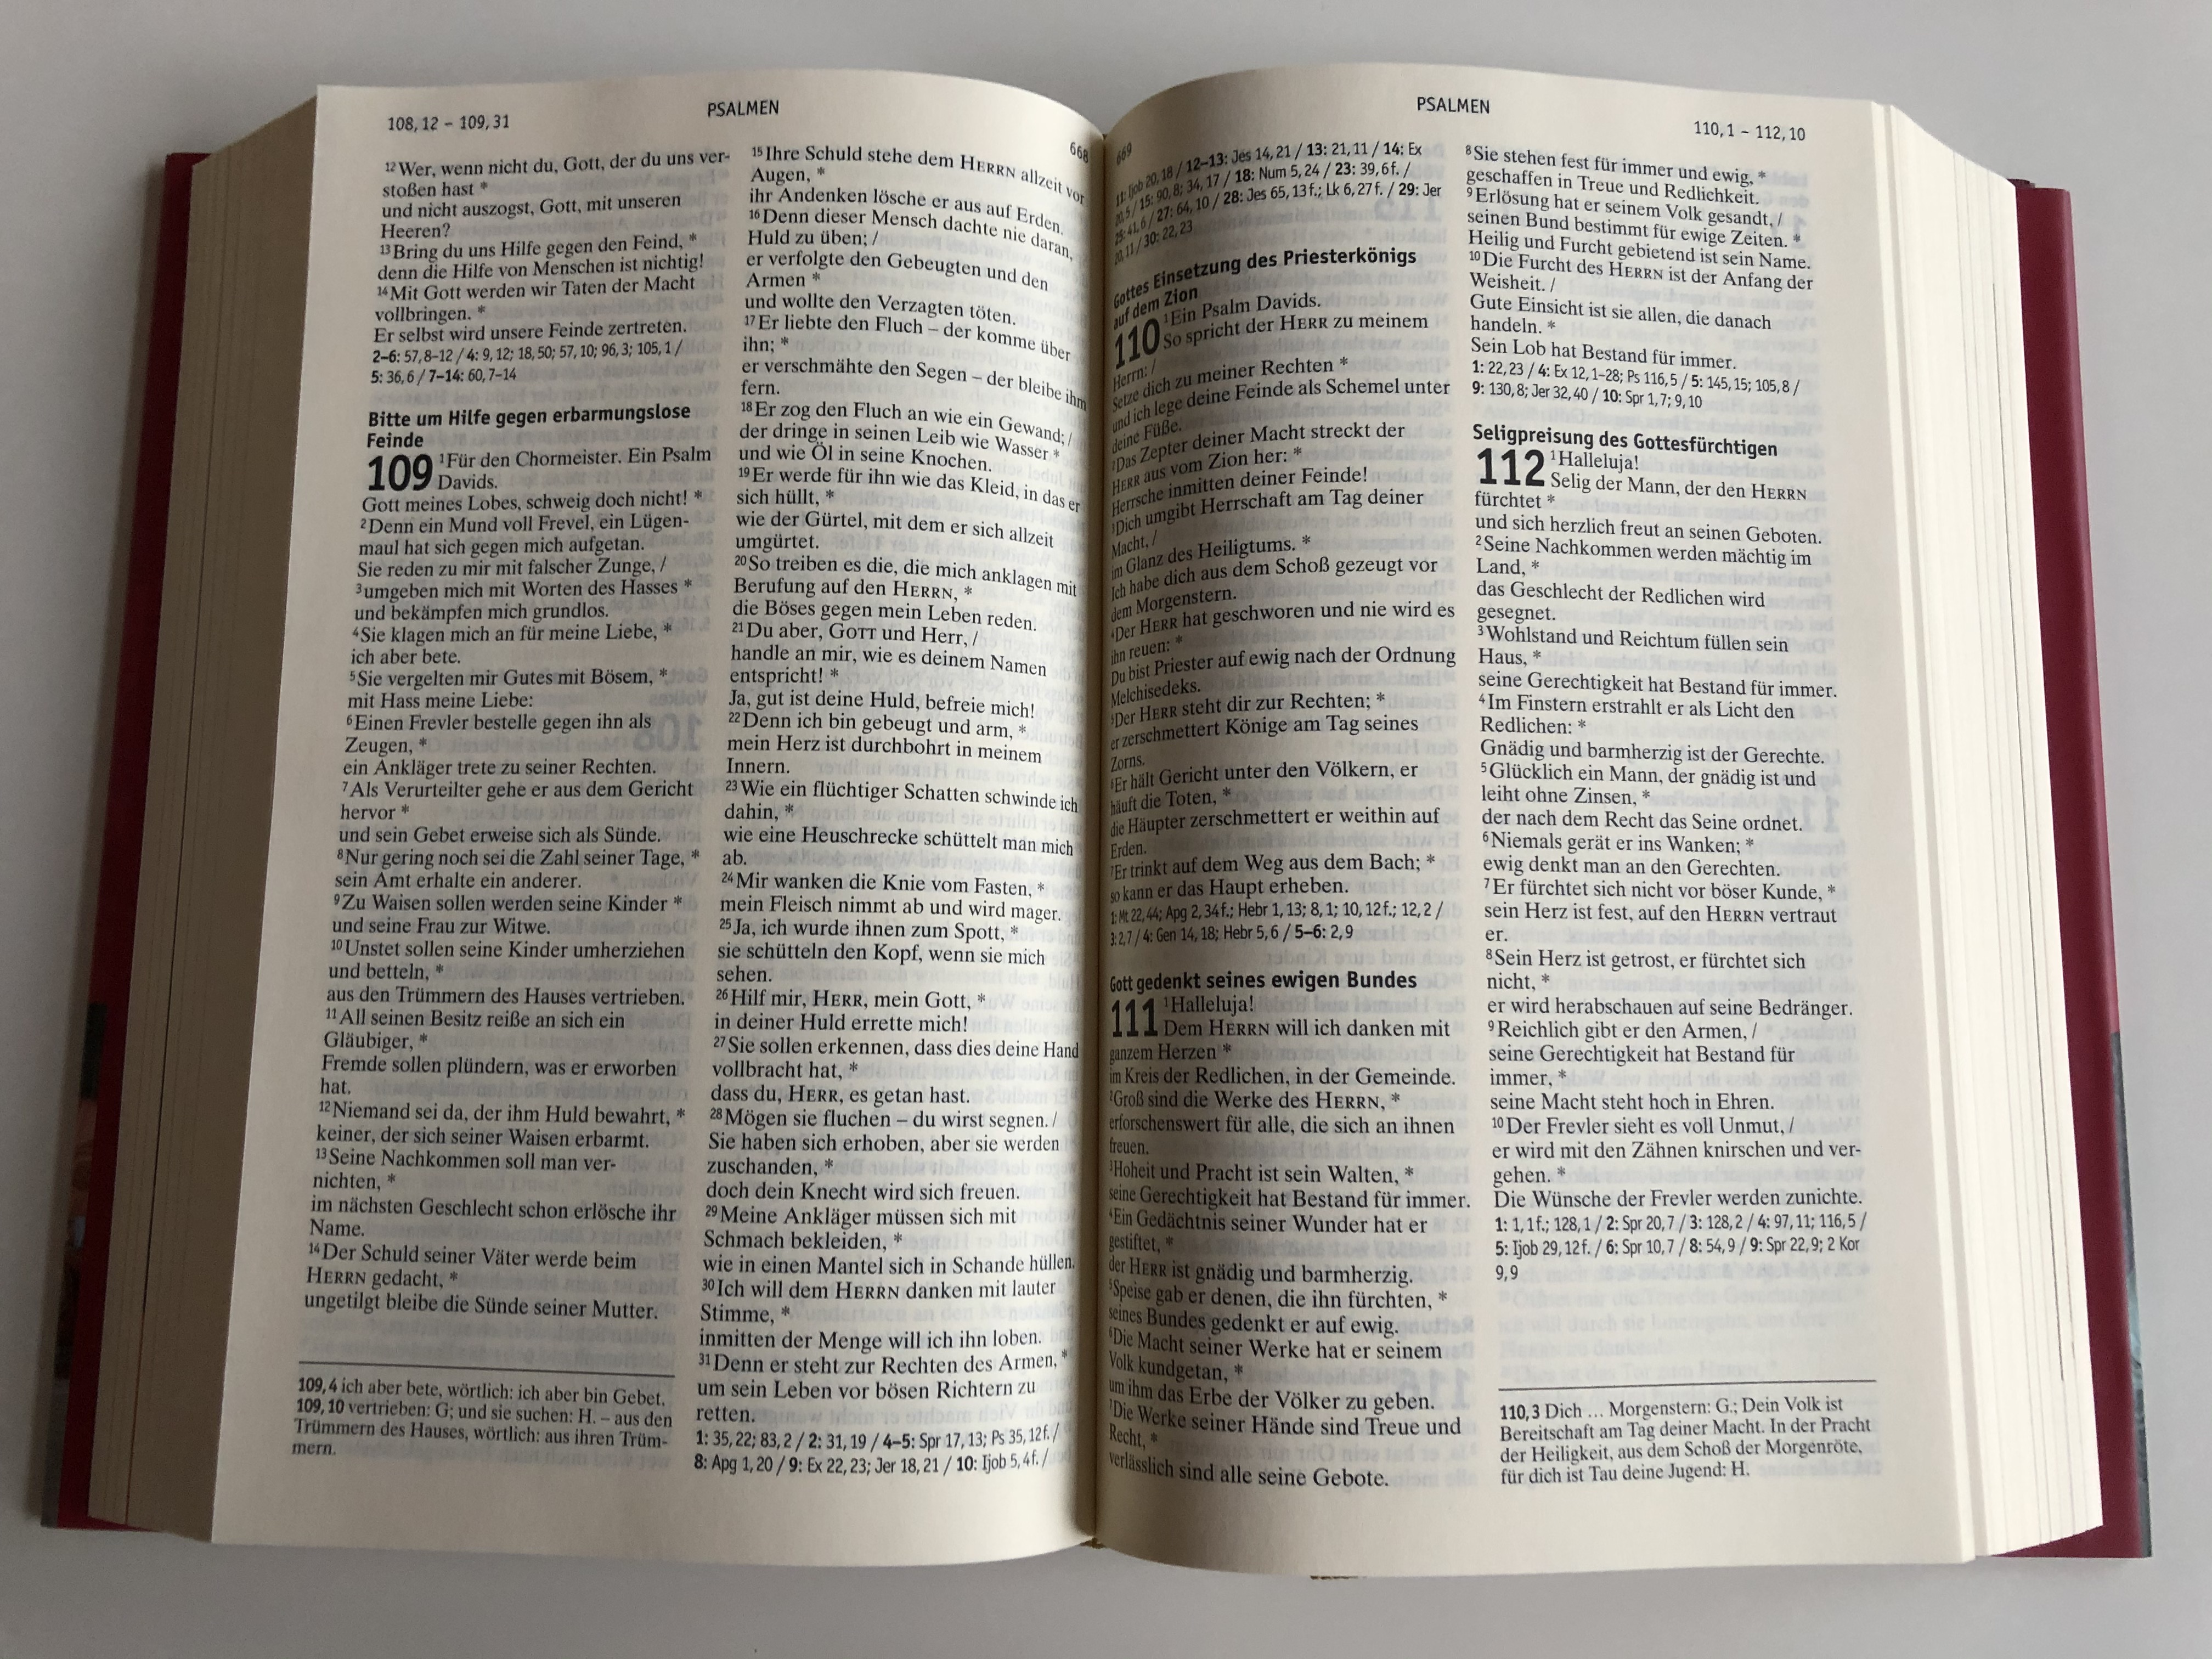 hausbibel-german-language-family-bible-einheits-bersetzung-12.jpg